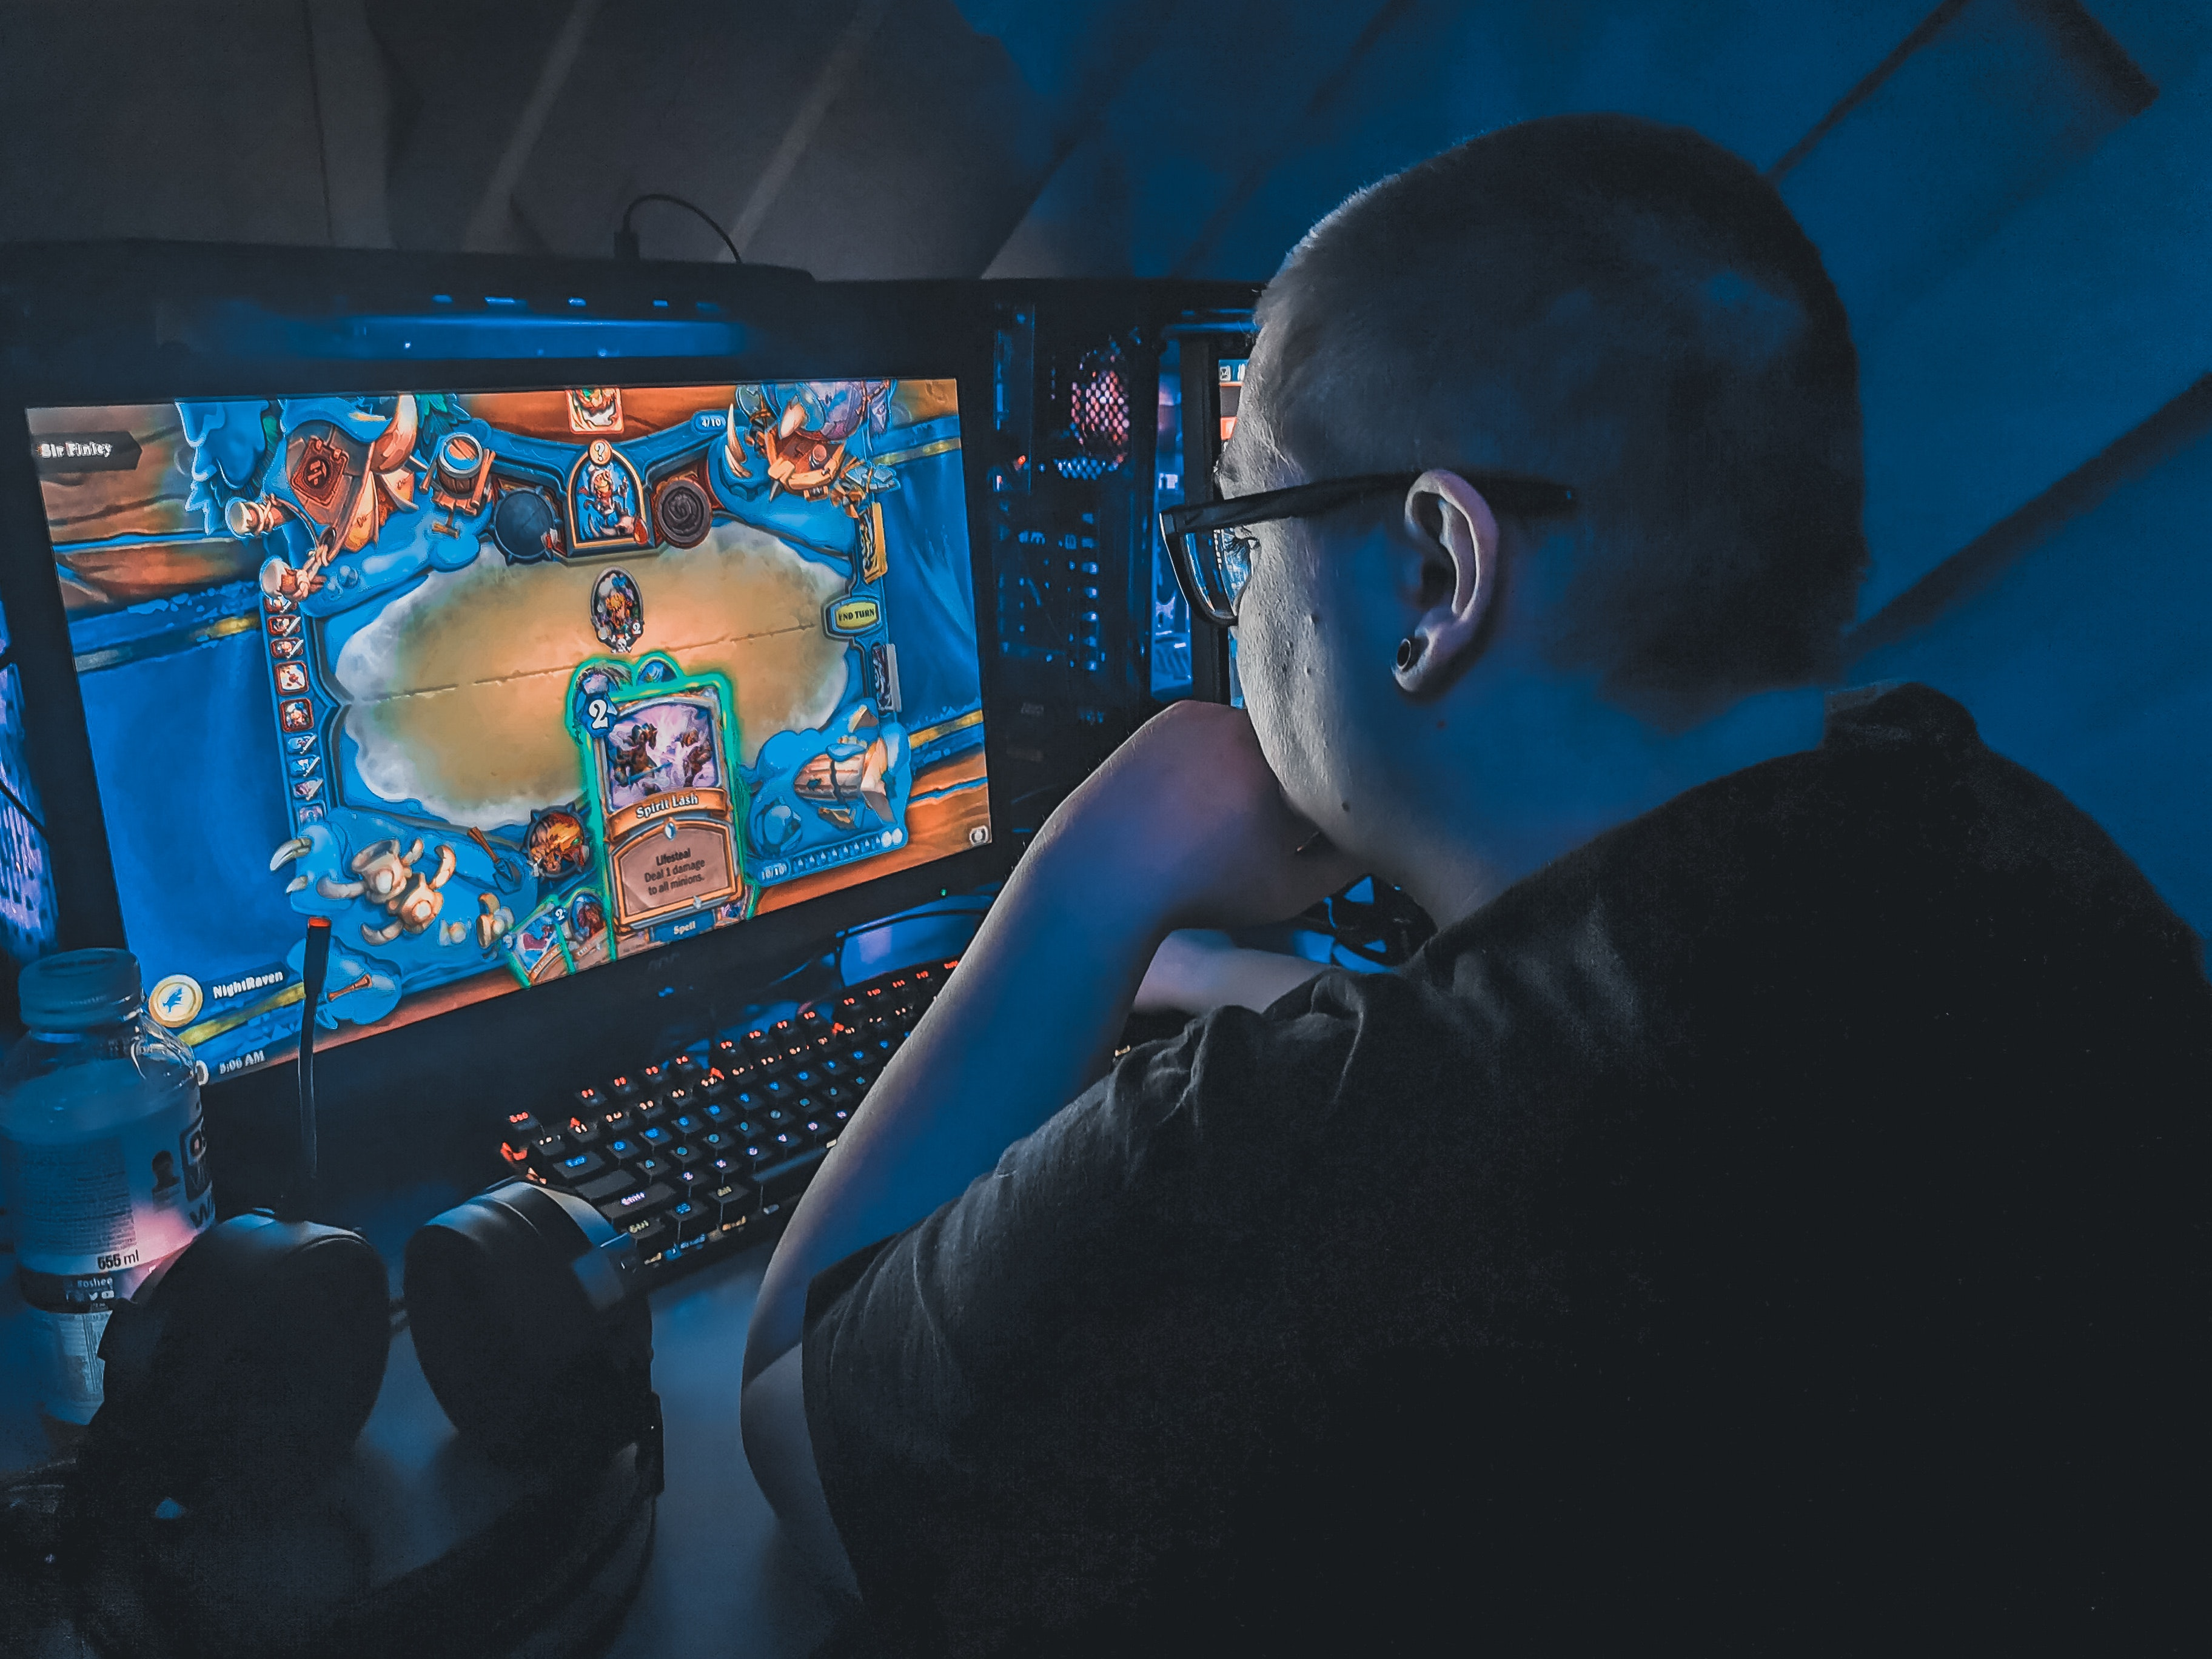 Overweight man playing video game at night · Free Stock Photo